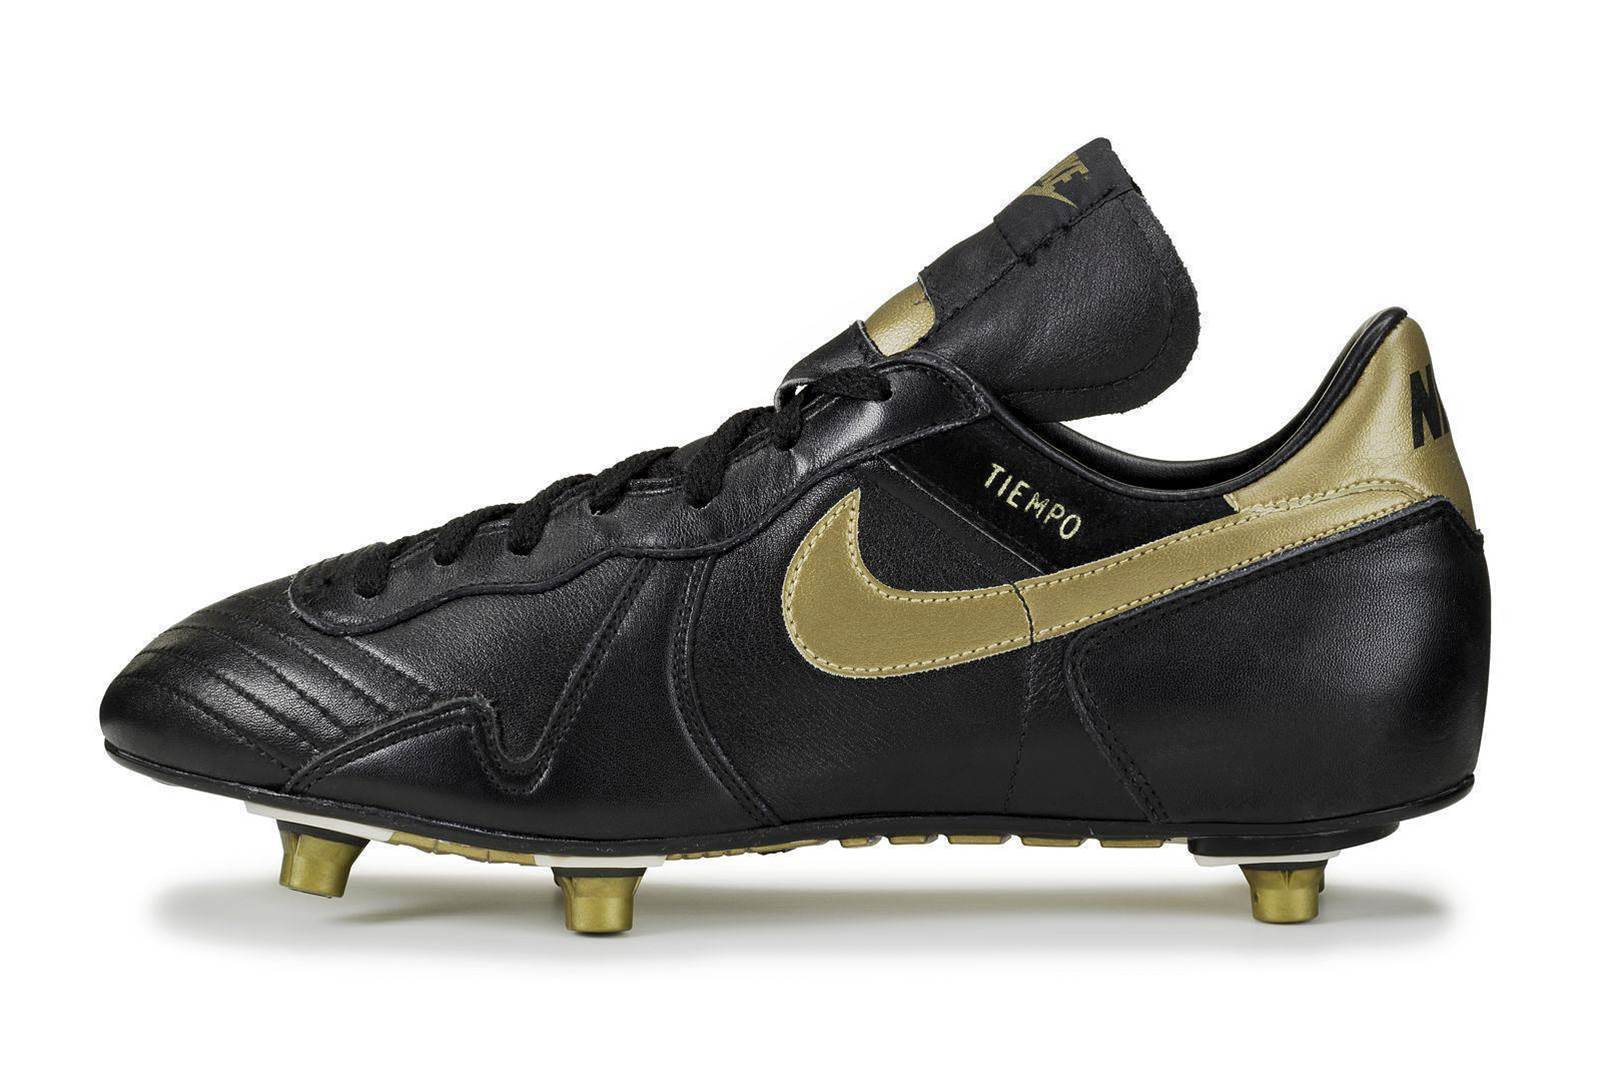 Gallery: The history of the Nike Tiempo